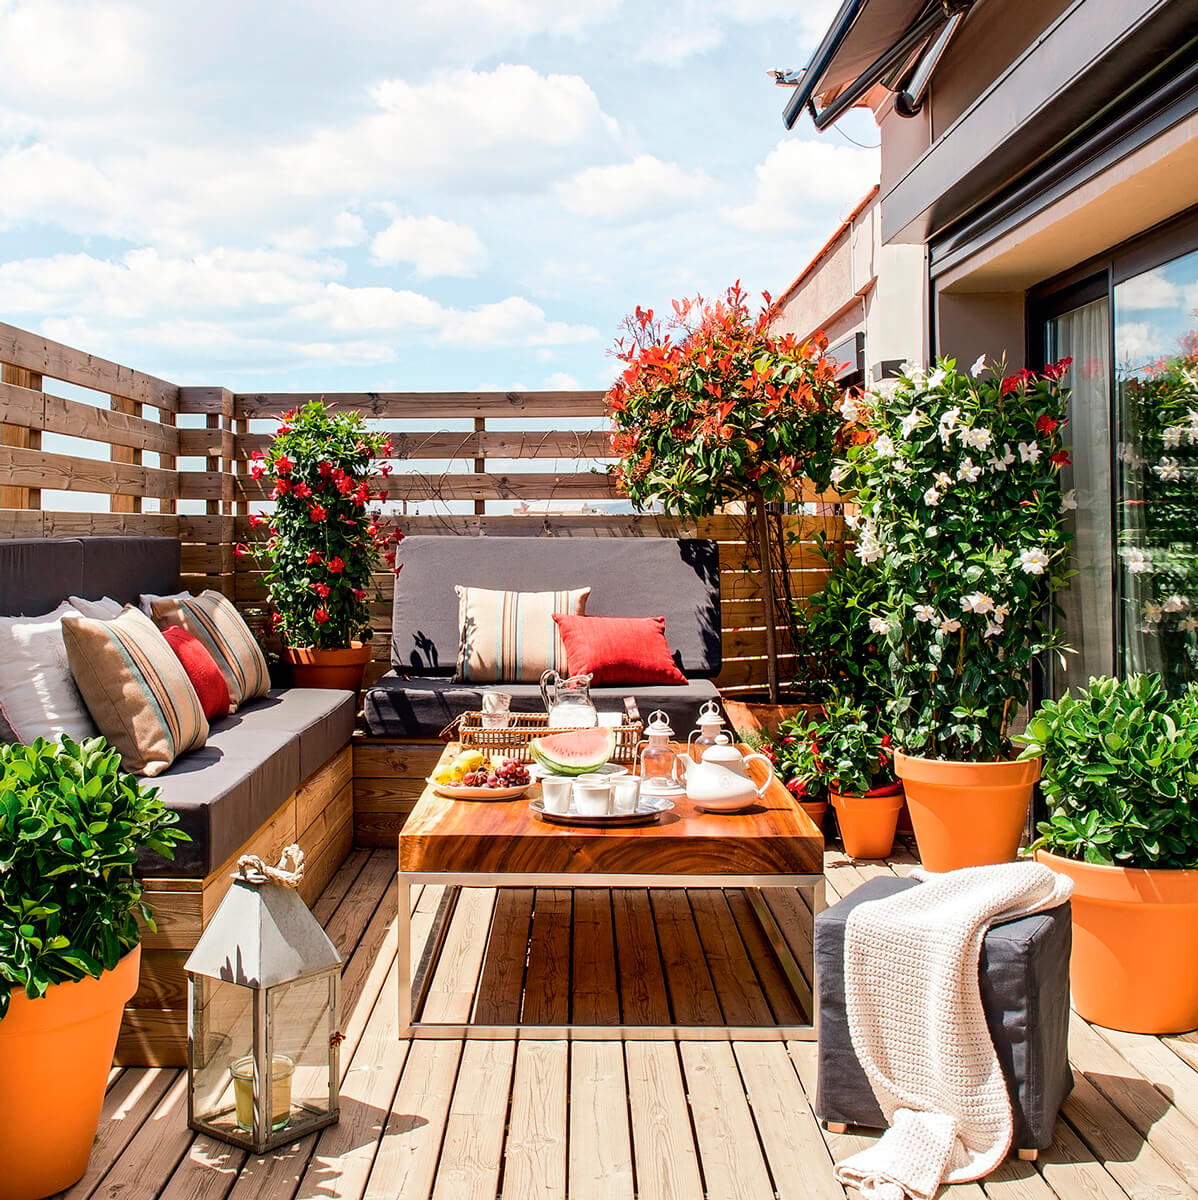 10 ideas para decorar terrazas y balcones handfie diy for Ideas decorativas para patios